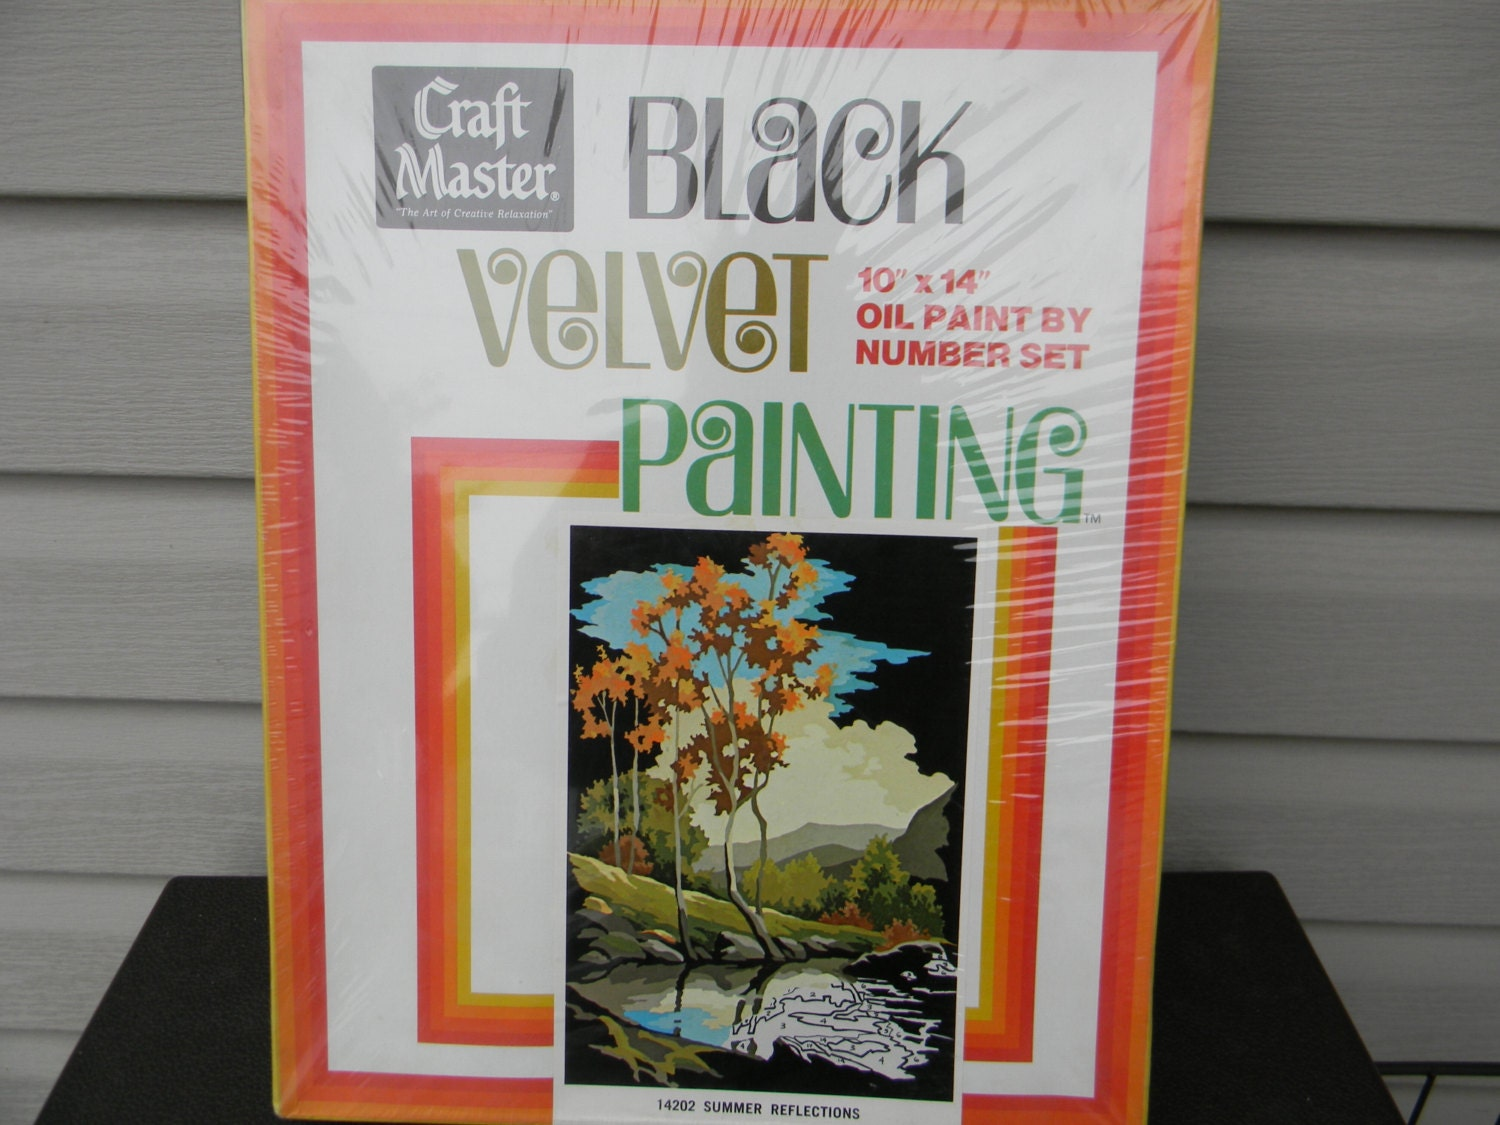 Craft master paint by number kits - Vintage Rare Black Velvet 14202 Paint By Number Kit Summer Reflections Craftmaster Dating Back To 1970 S Unused